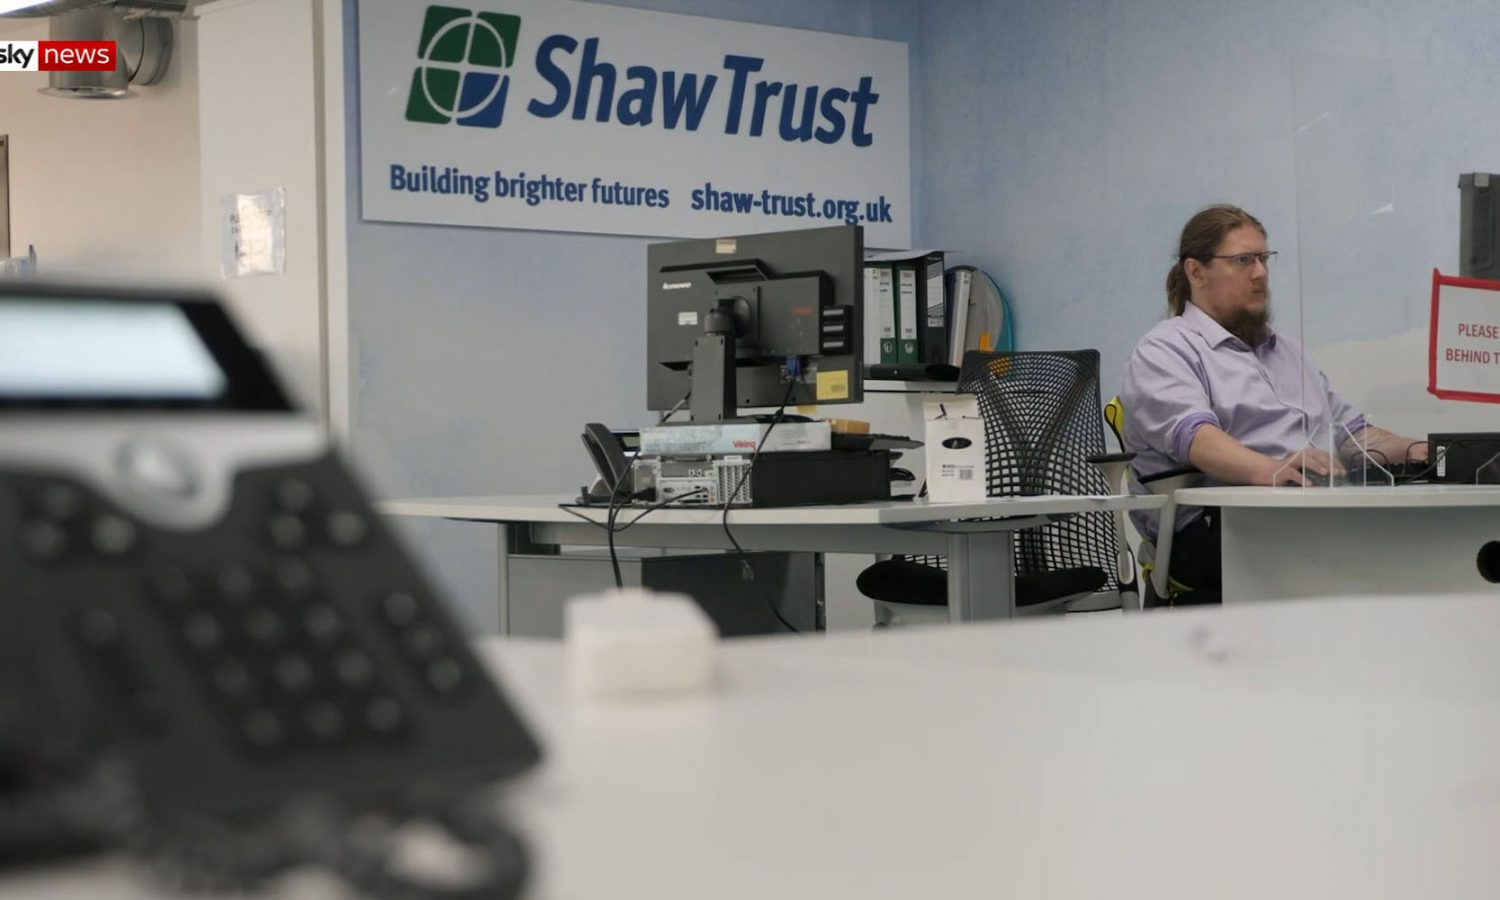 A picture of a Shaw Trust employment hub